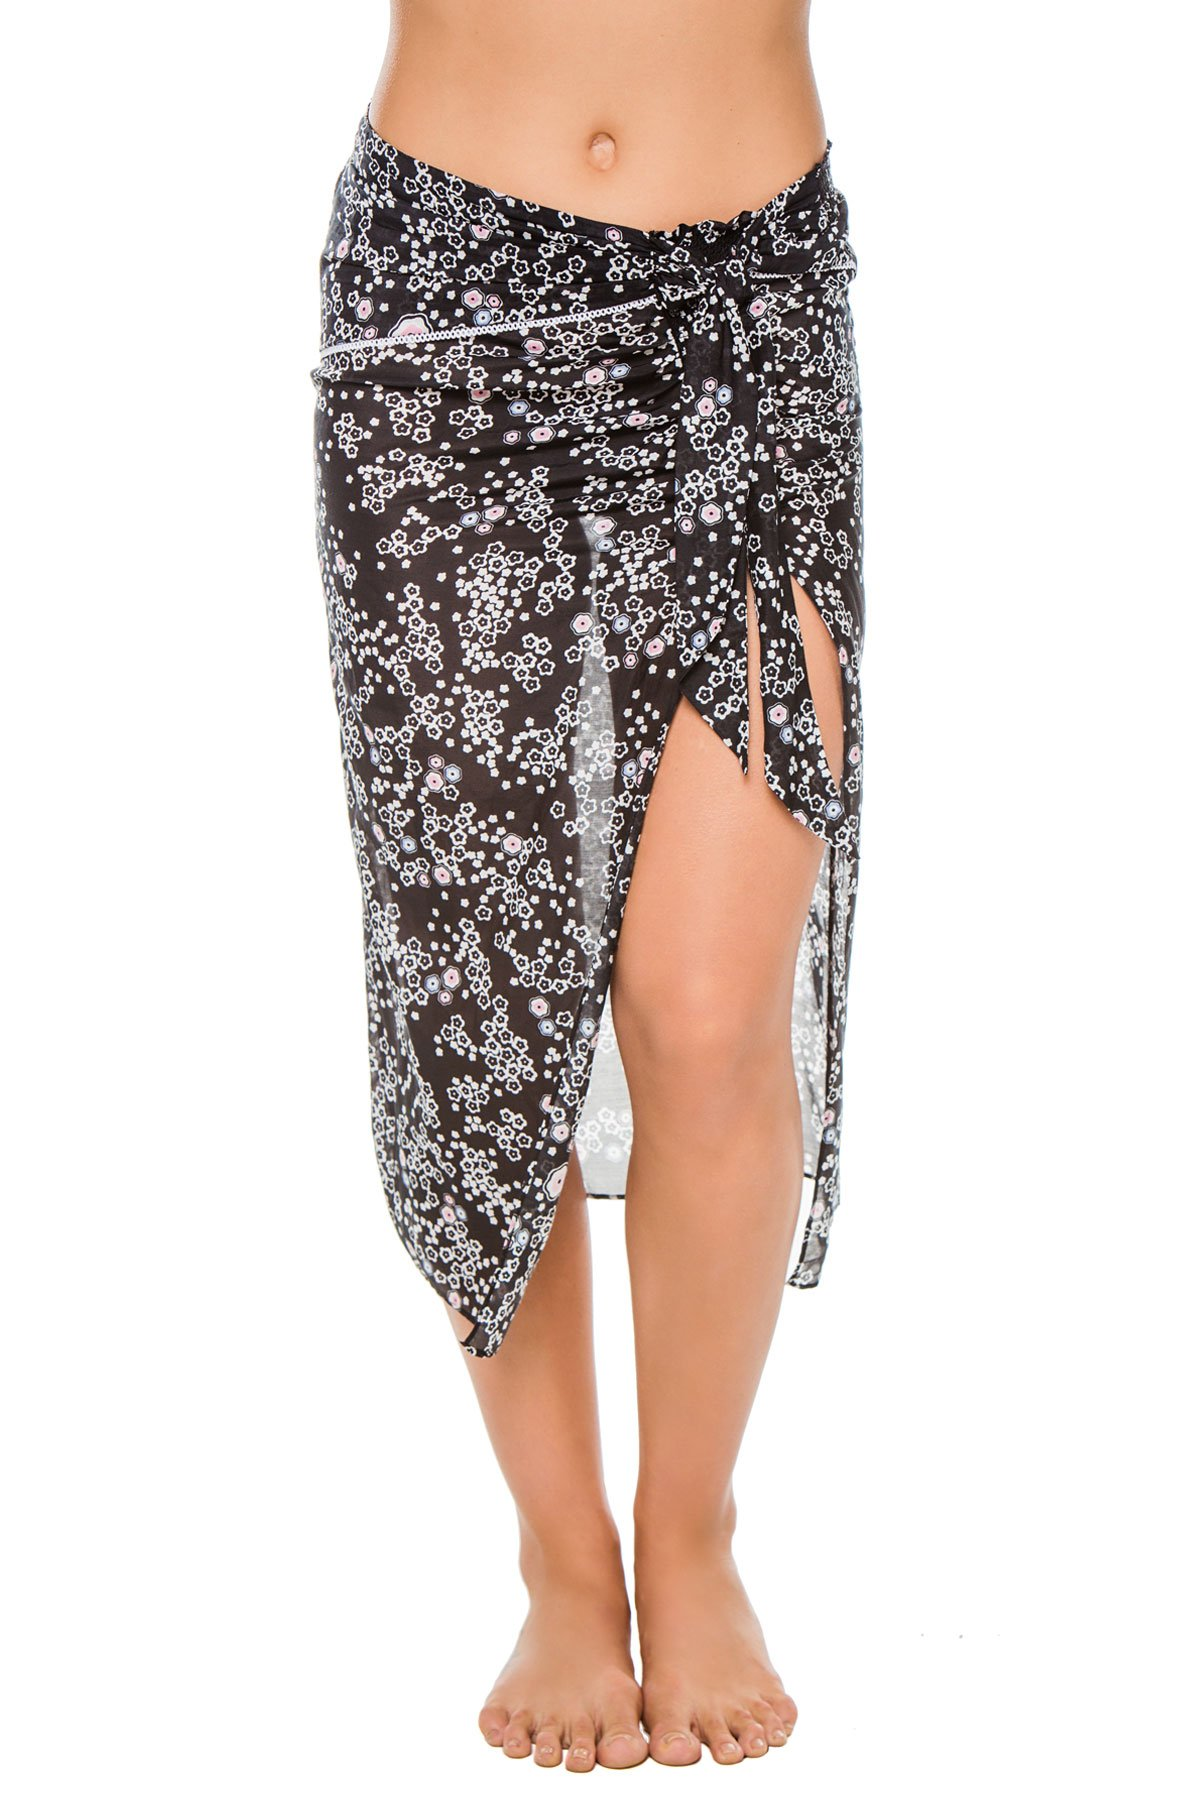 Kisuii Women's Black Floral Pareo Swim Cover Up Black Floral S by Kisuii